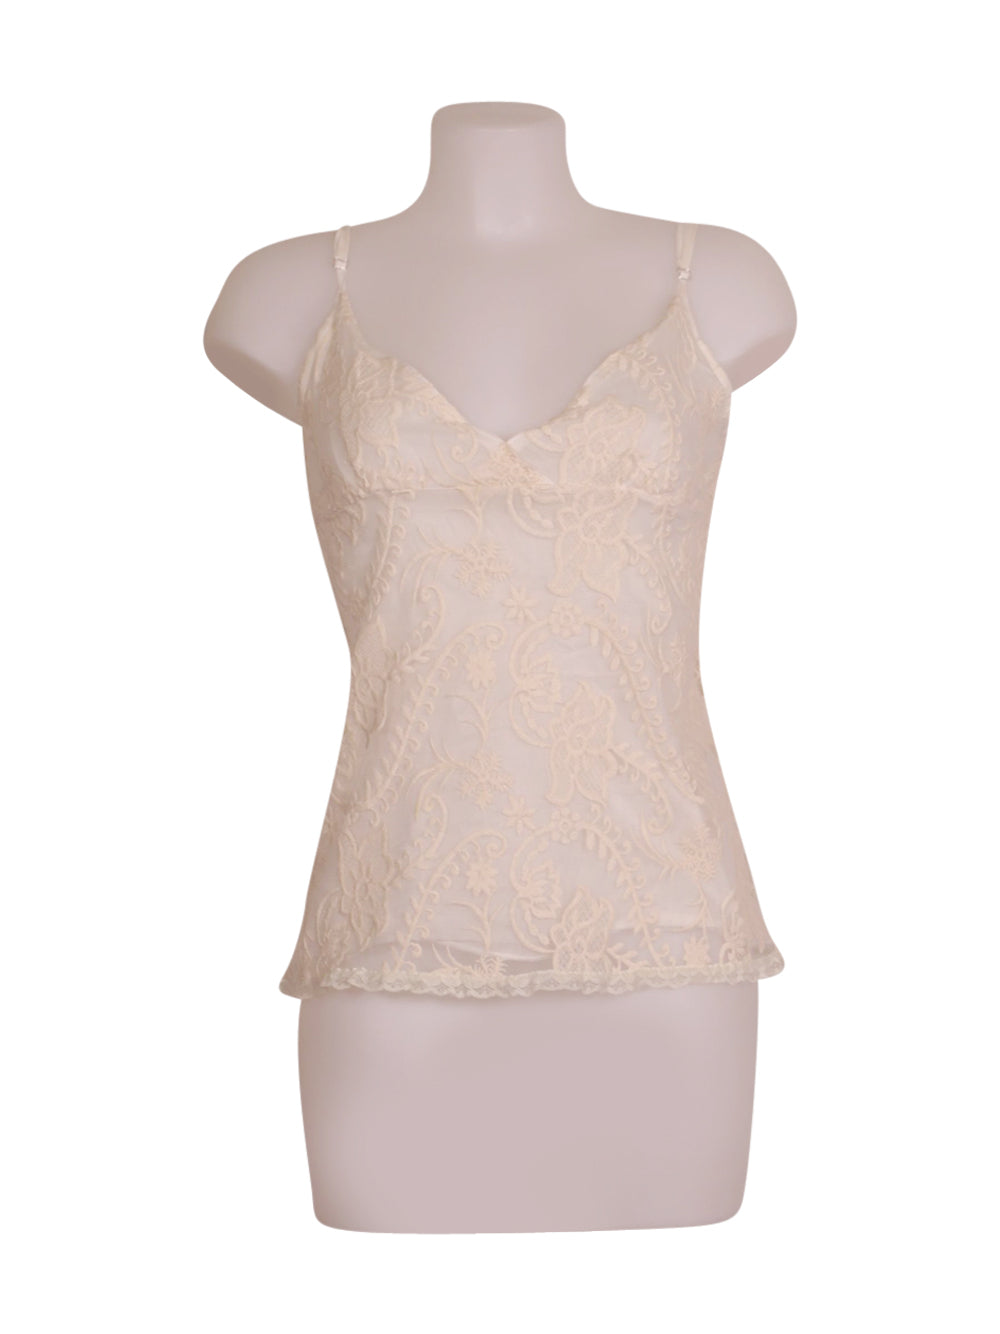 Front photo of Preloved Siste's White Woman's sleeveless top - size 10/M